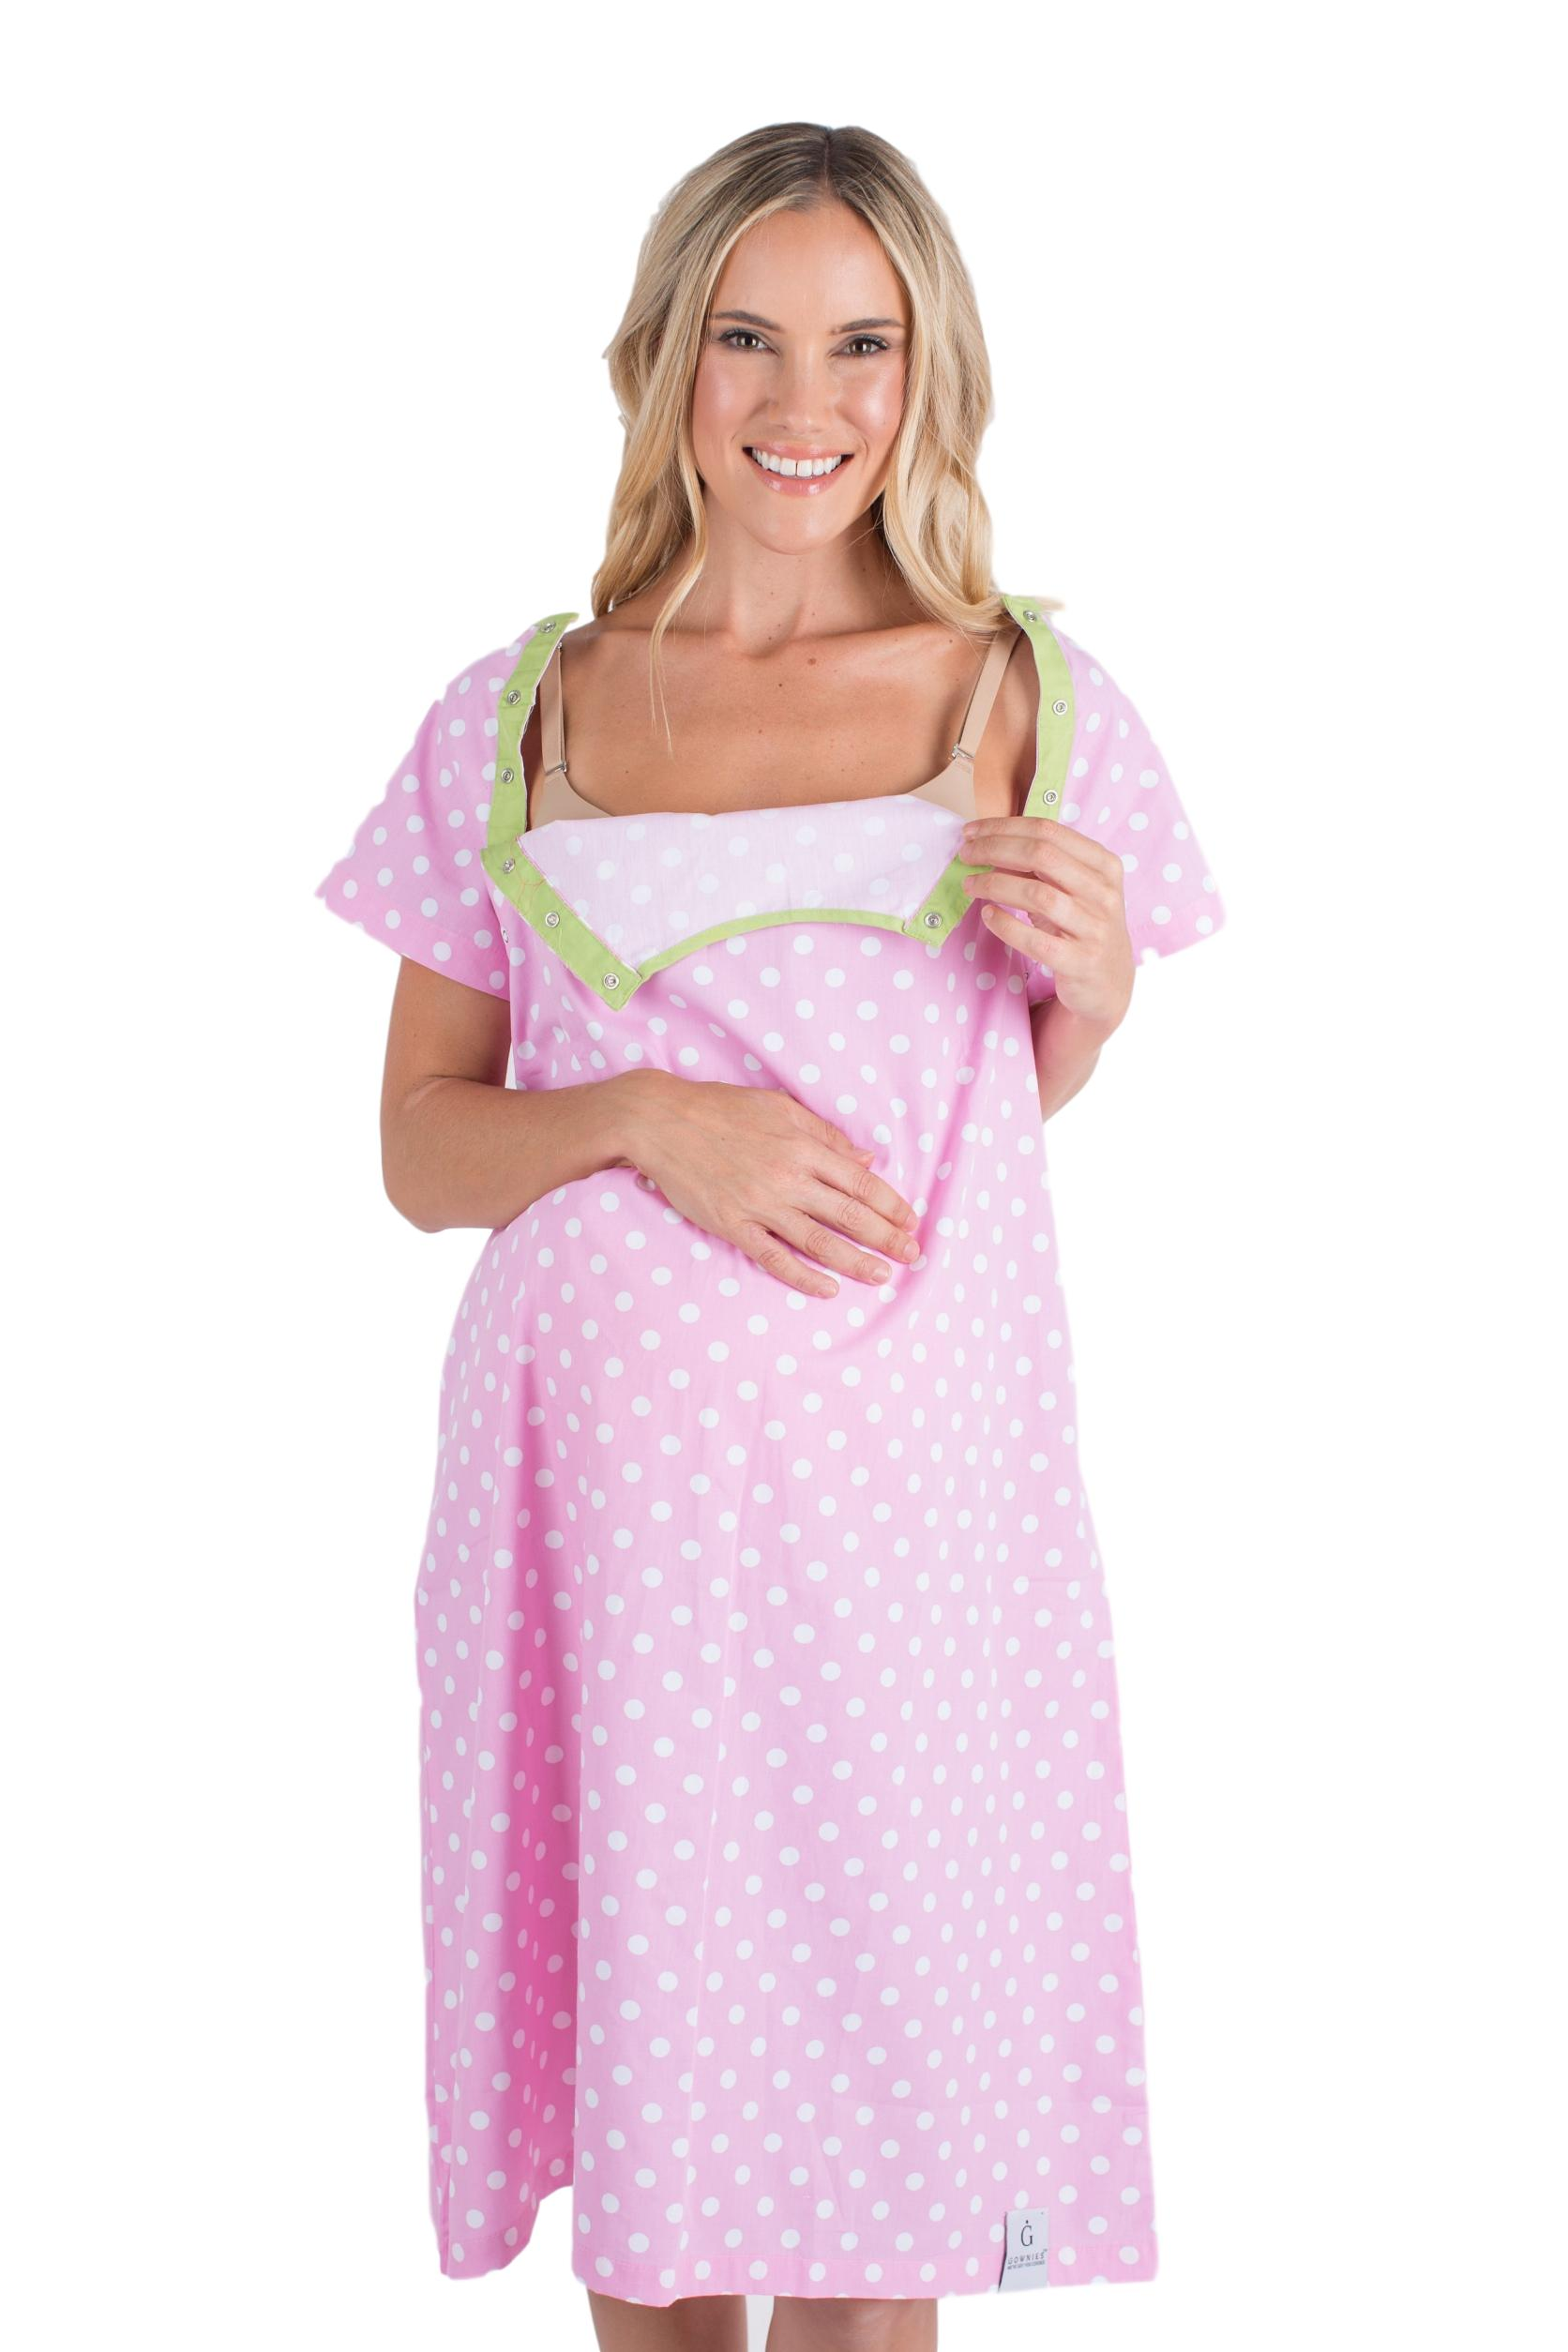 Pink Dotted Labor And Delivery Hospital Gowns For